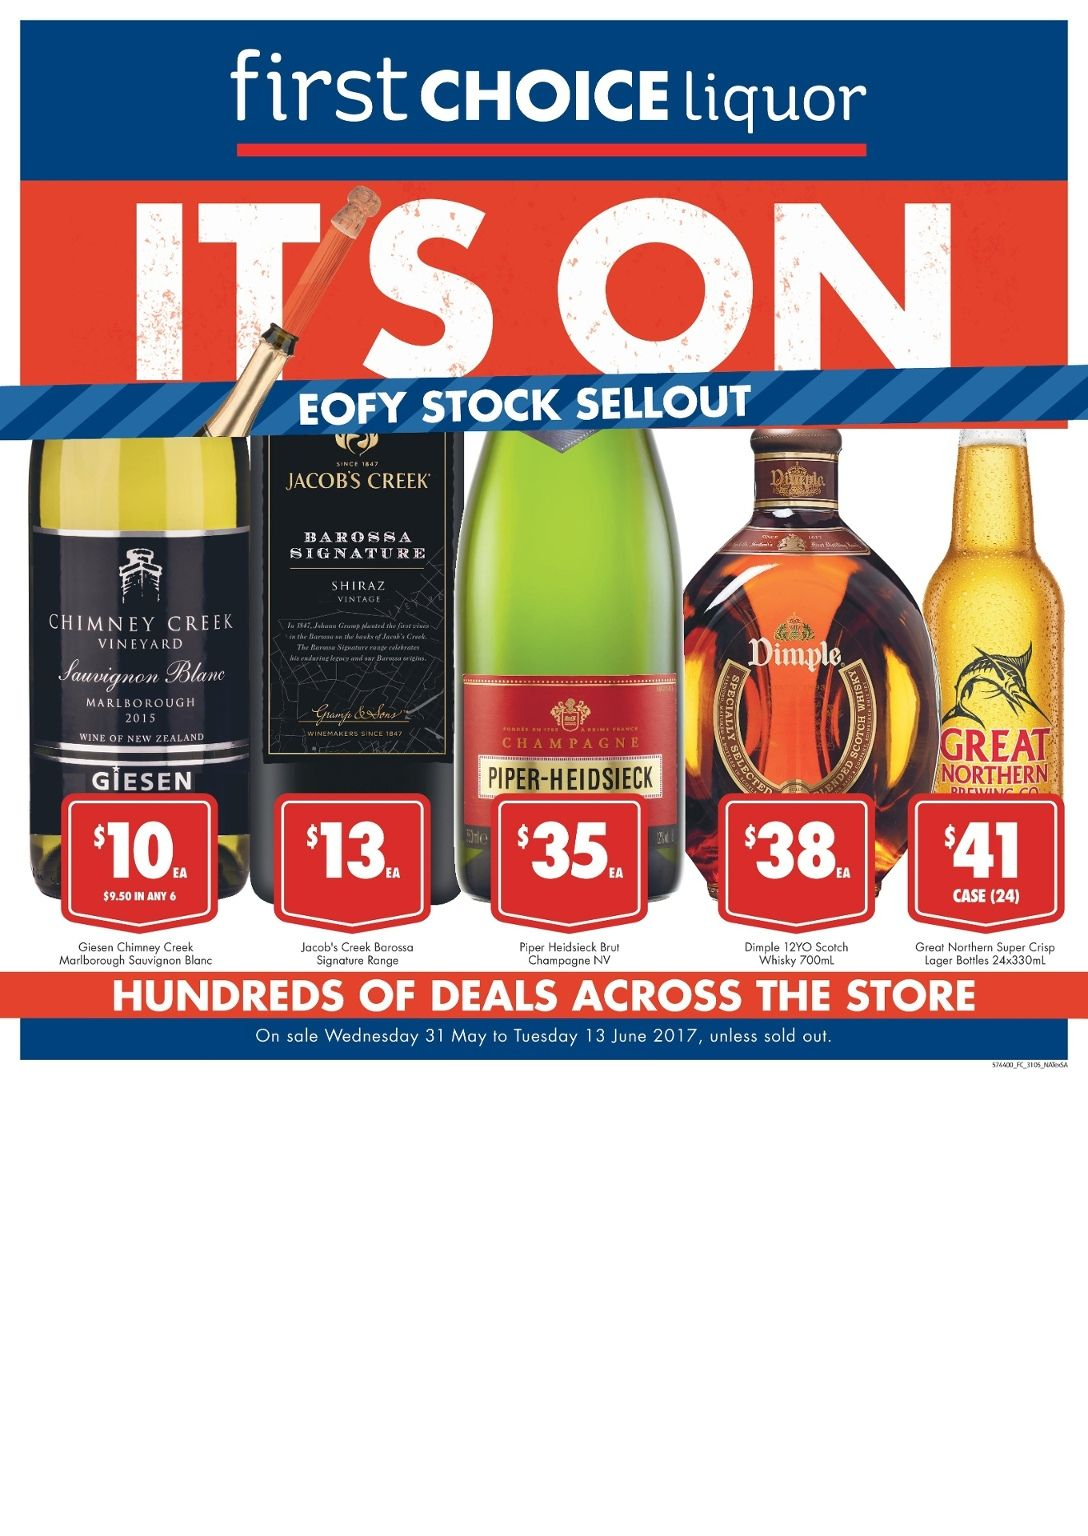 First Choice Liquor Specials 31 May 13 June 2017 Http Olcatalogue Com Fcl First Choice Liquor Html Weekly Specials Grocery Catalog